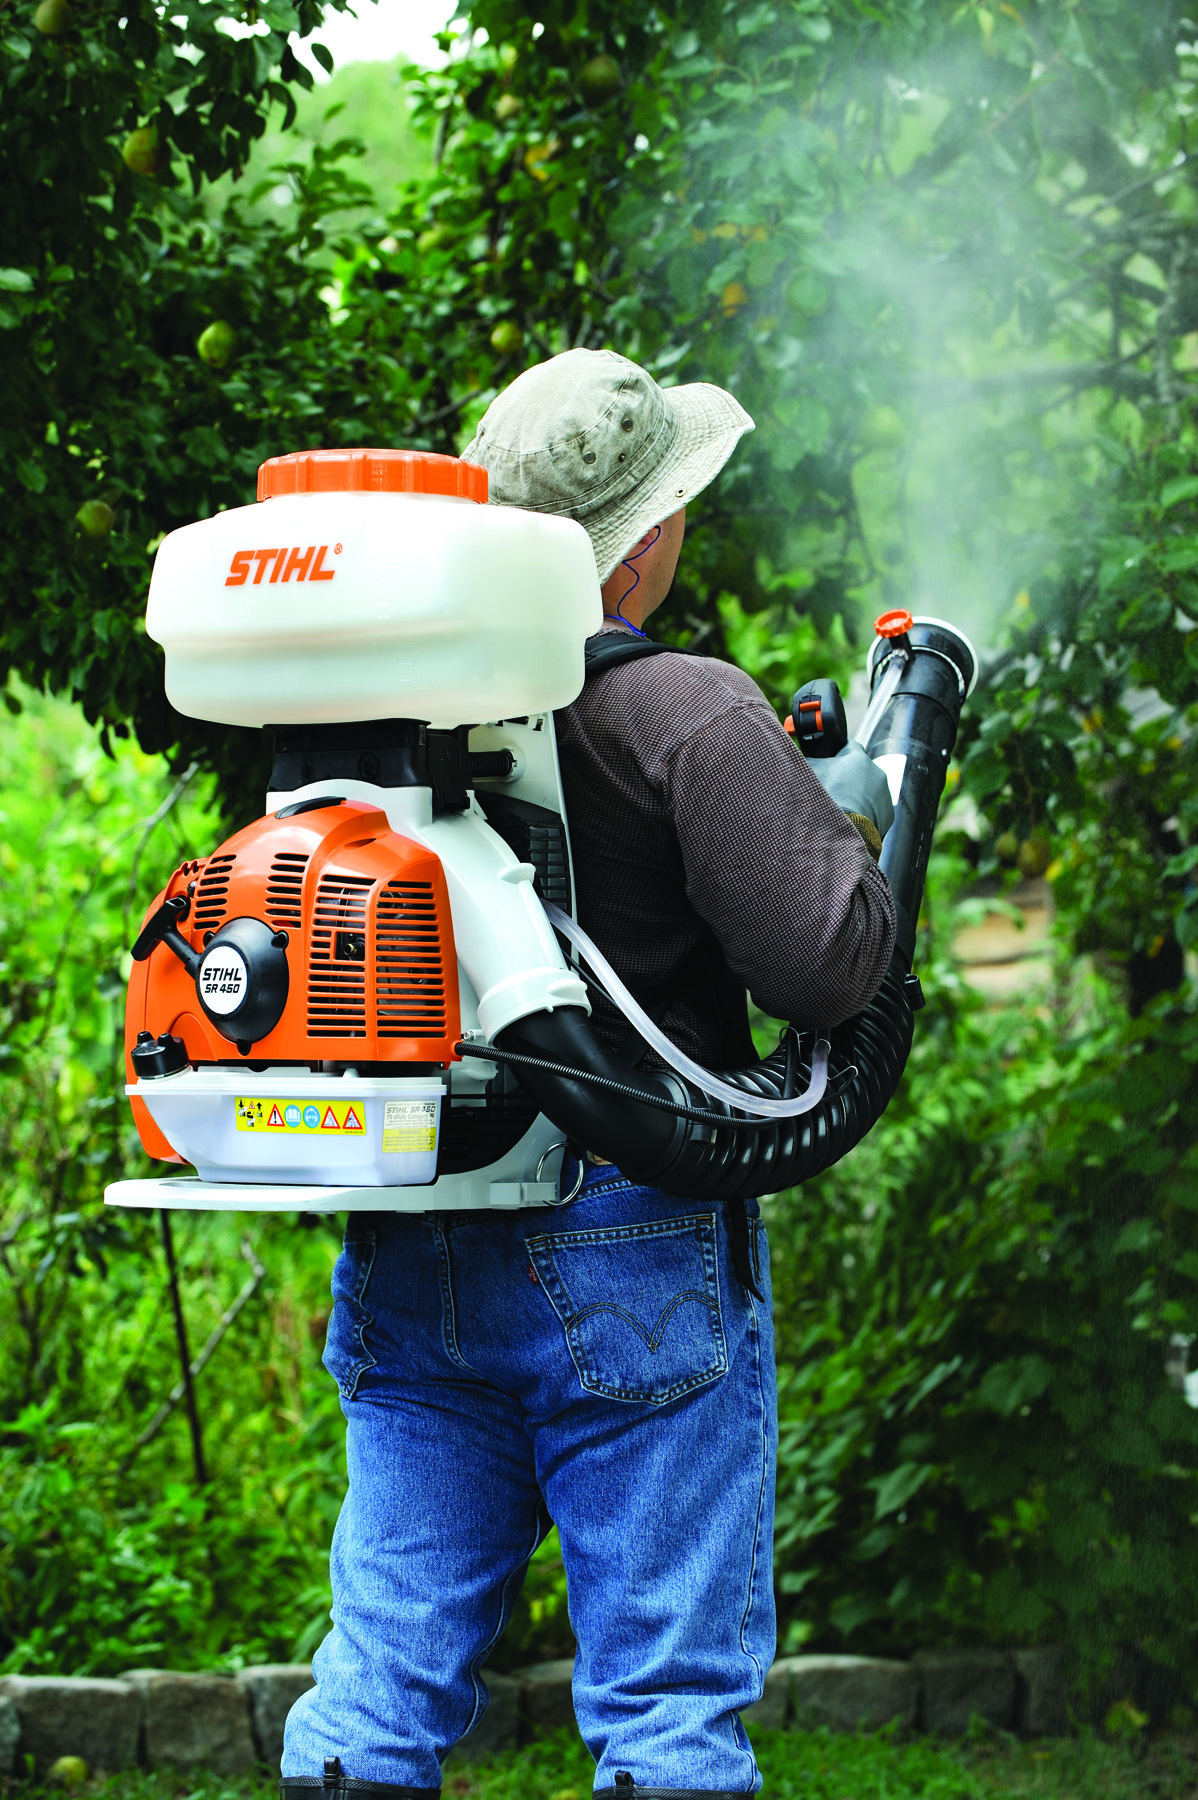 Stihl Sr 200 Light Weight Backpack Sprayer Gasoline